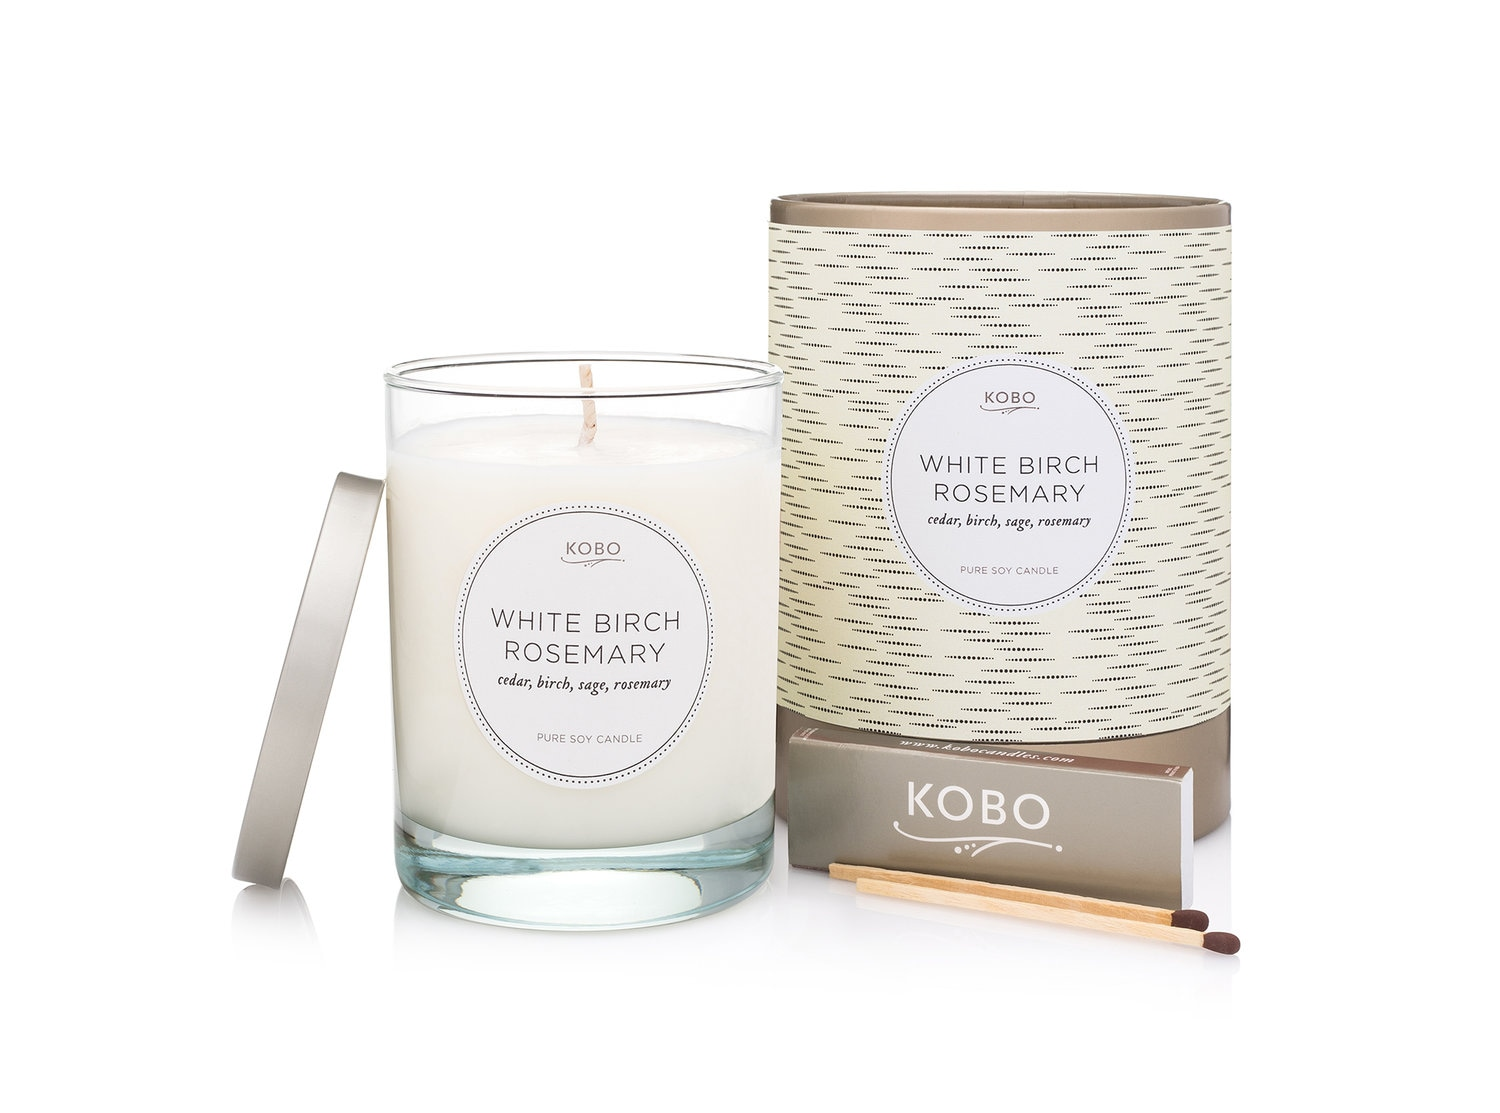 Kobo White Birch Rosemary Candle